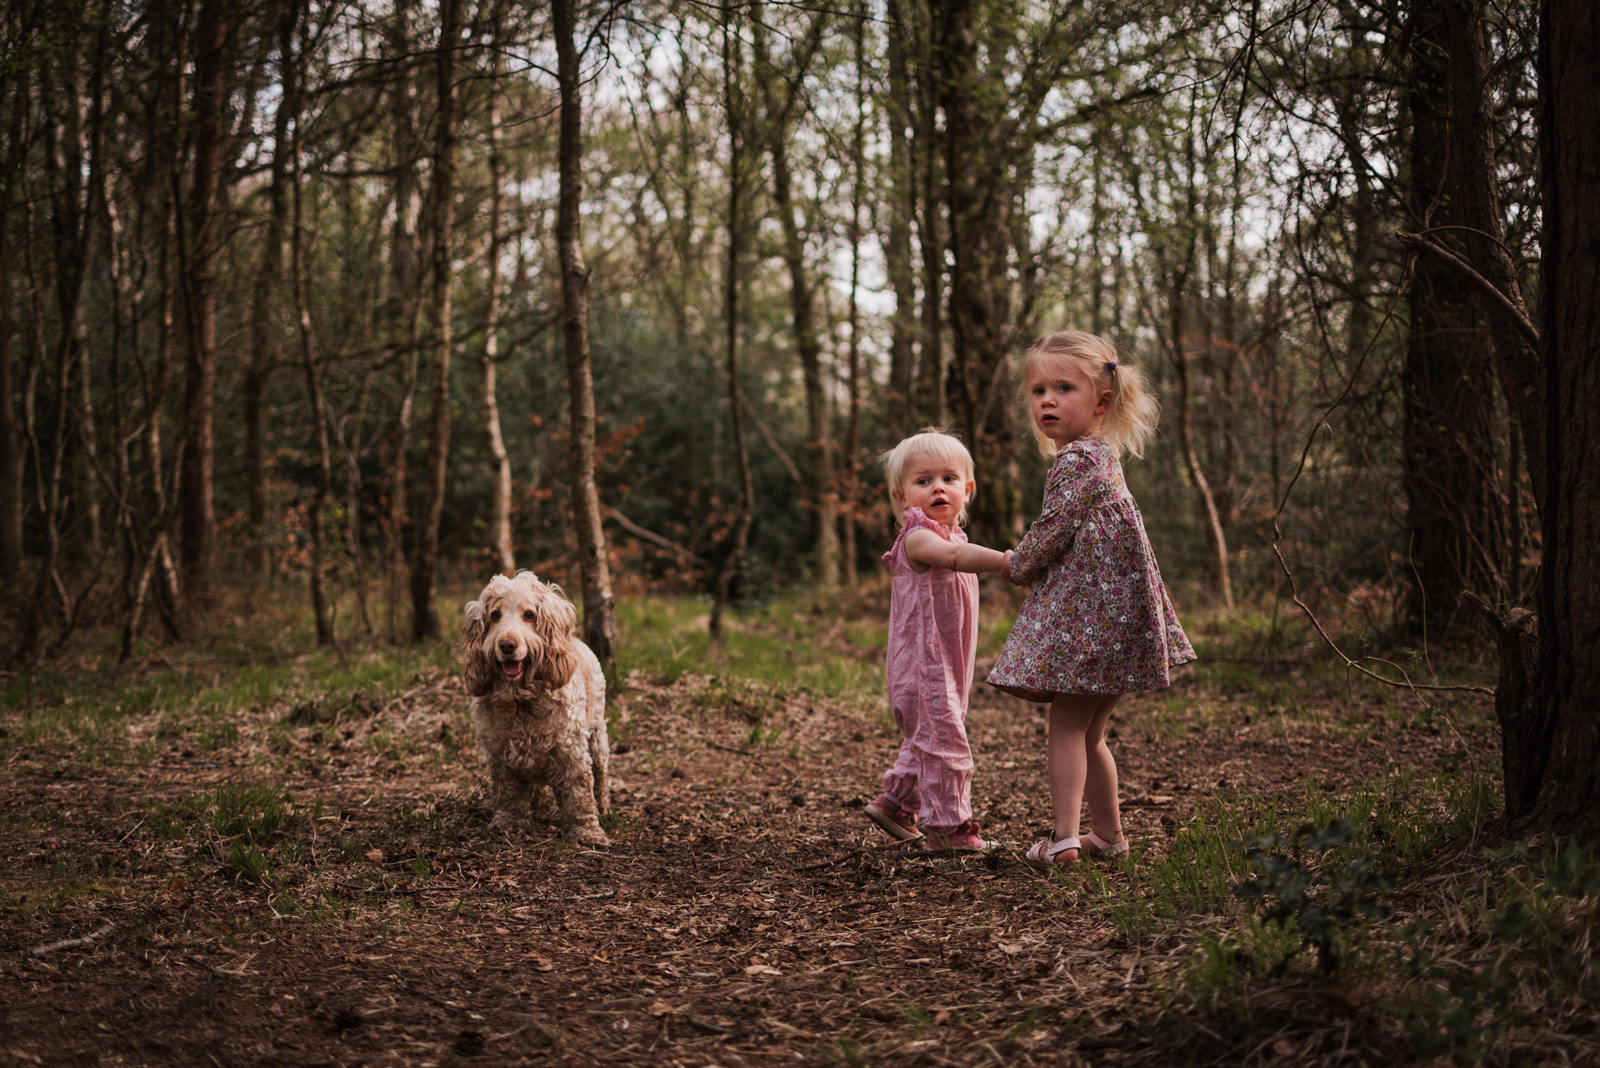 Natural documentary family photography by The Ginger Collective, girls and dog in the woods